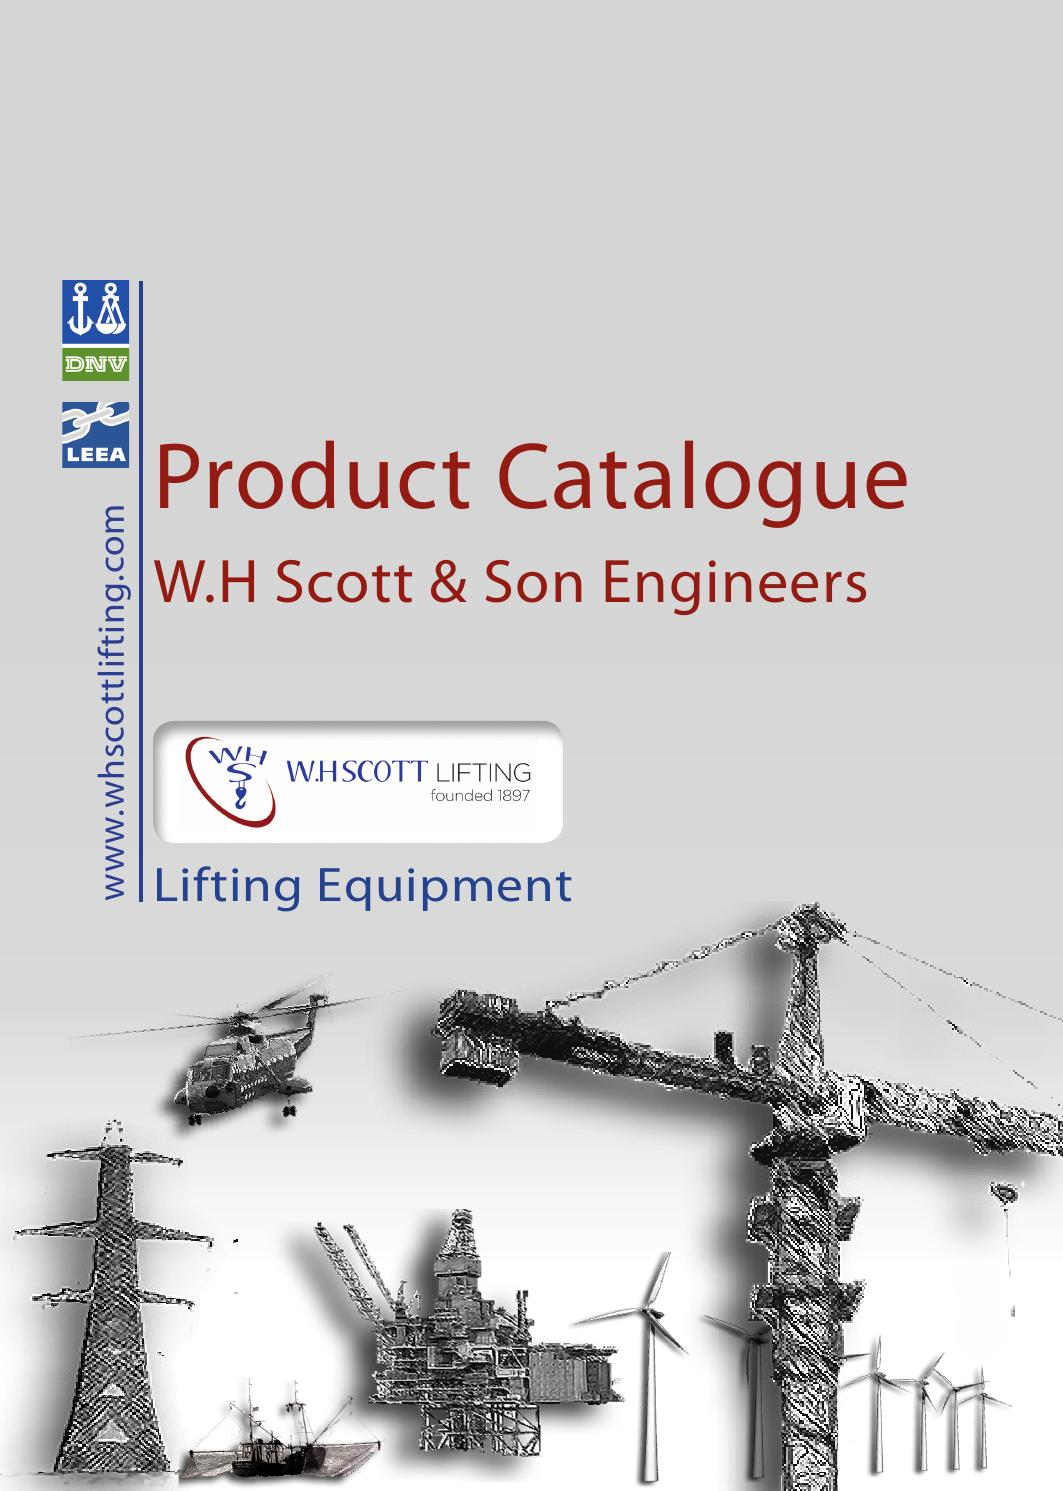 Wh scott product catalouge No 1 by WH Scott & Son Engineers - issuu